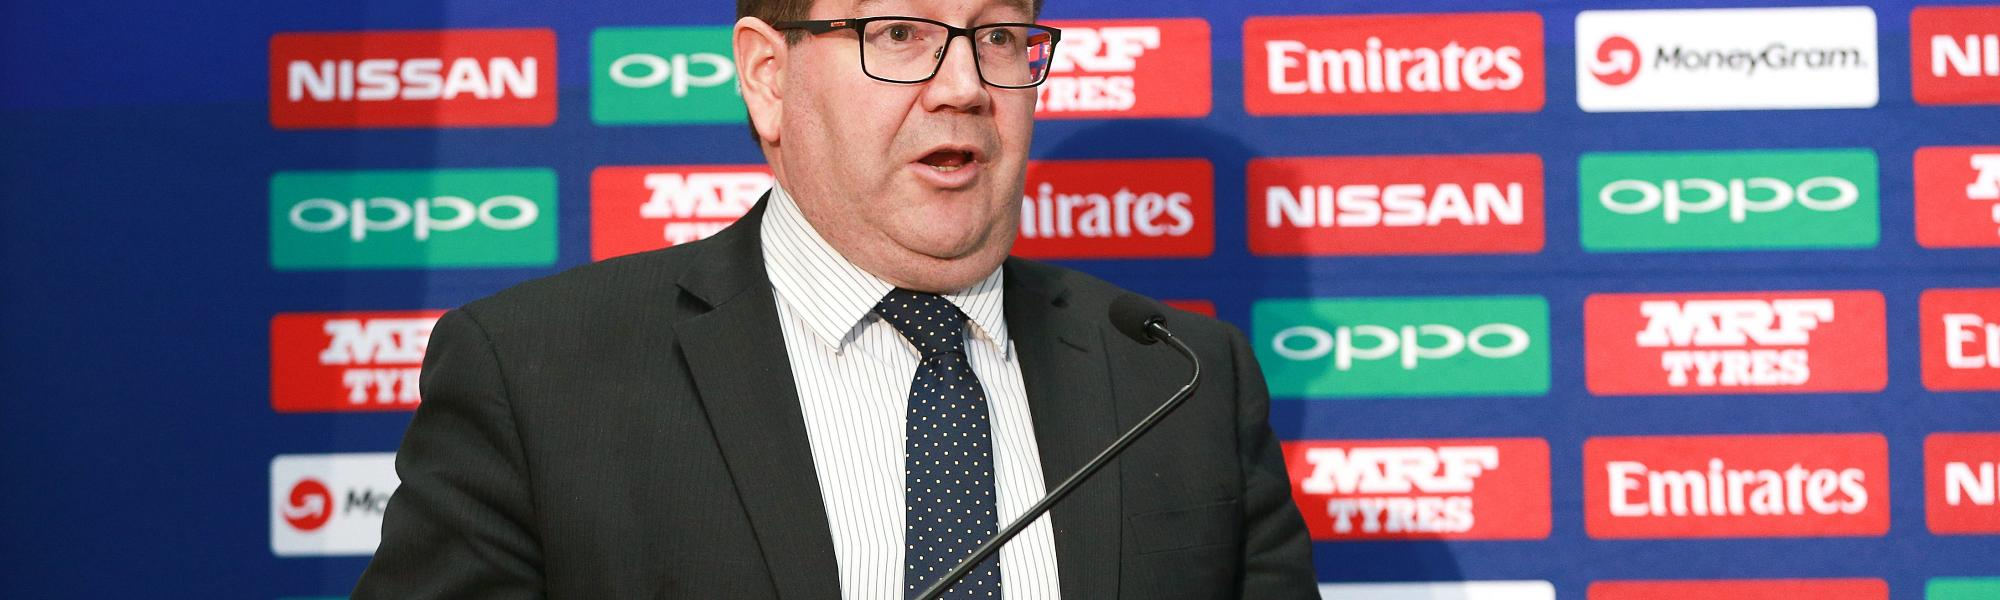 NZ Sports and Recreation Minister Grant Robertson speaks at the launch of the ICC U19 World Cup 2018 in Wellington, New Zealand.